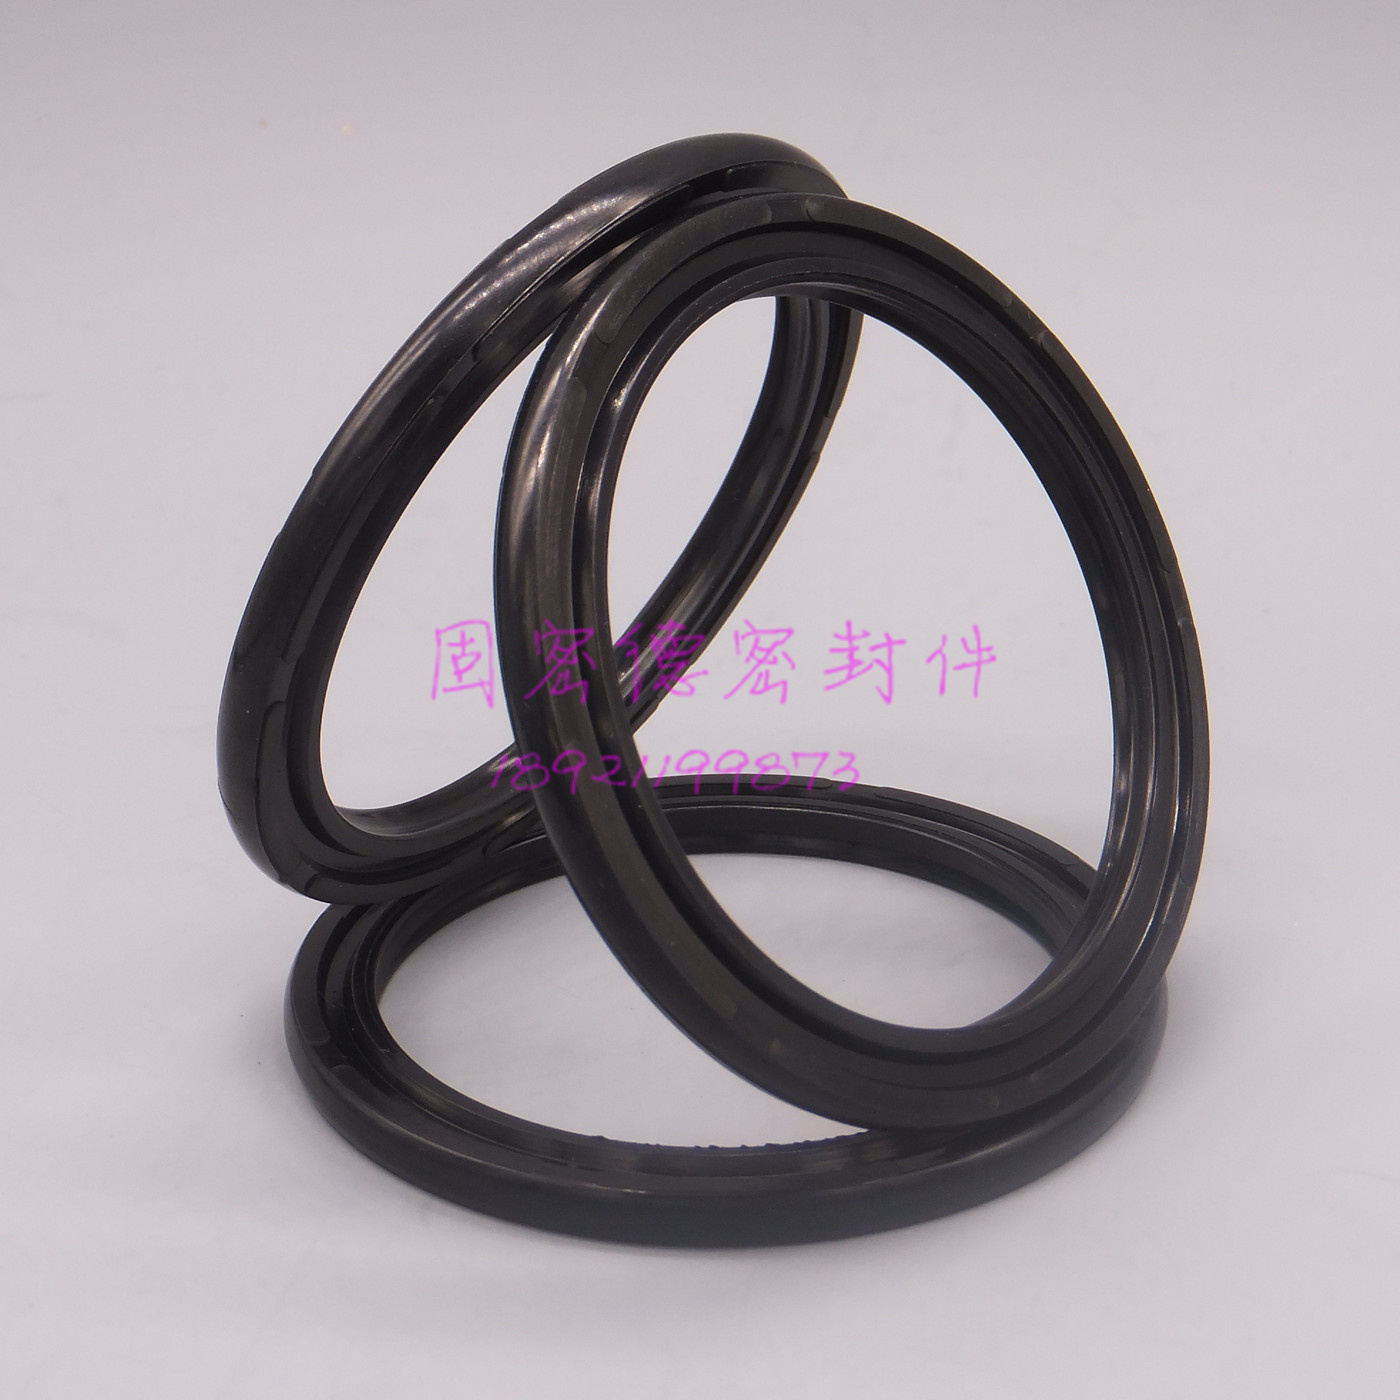 The cylinder piston with COP/APA/ double O/C type 300*10*280*7.6 thin ring / piece.